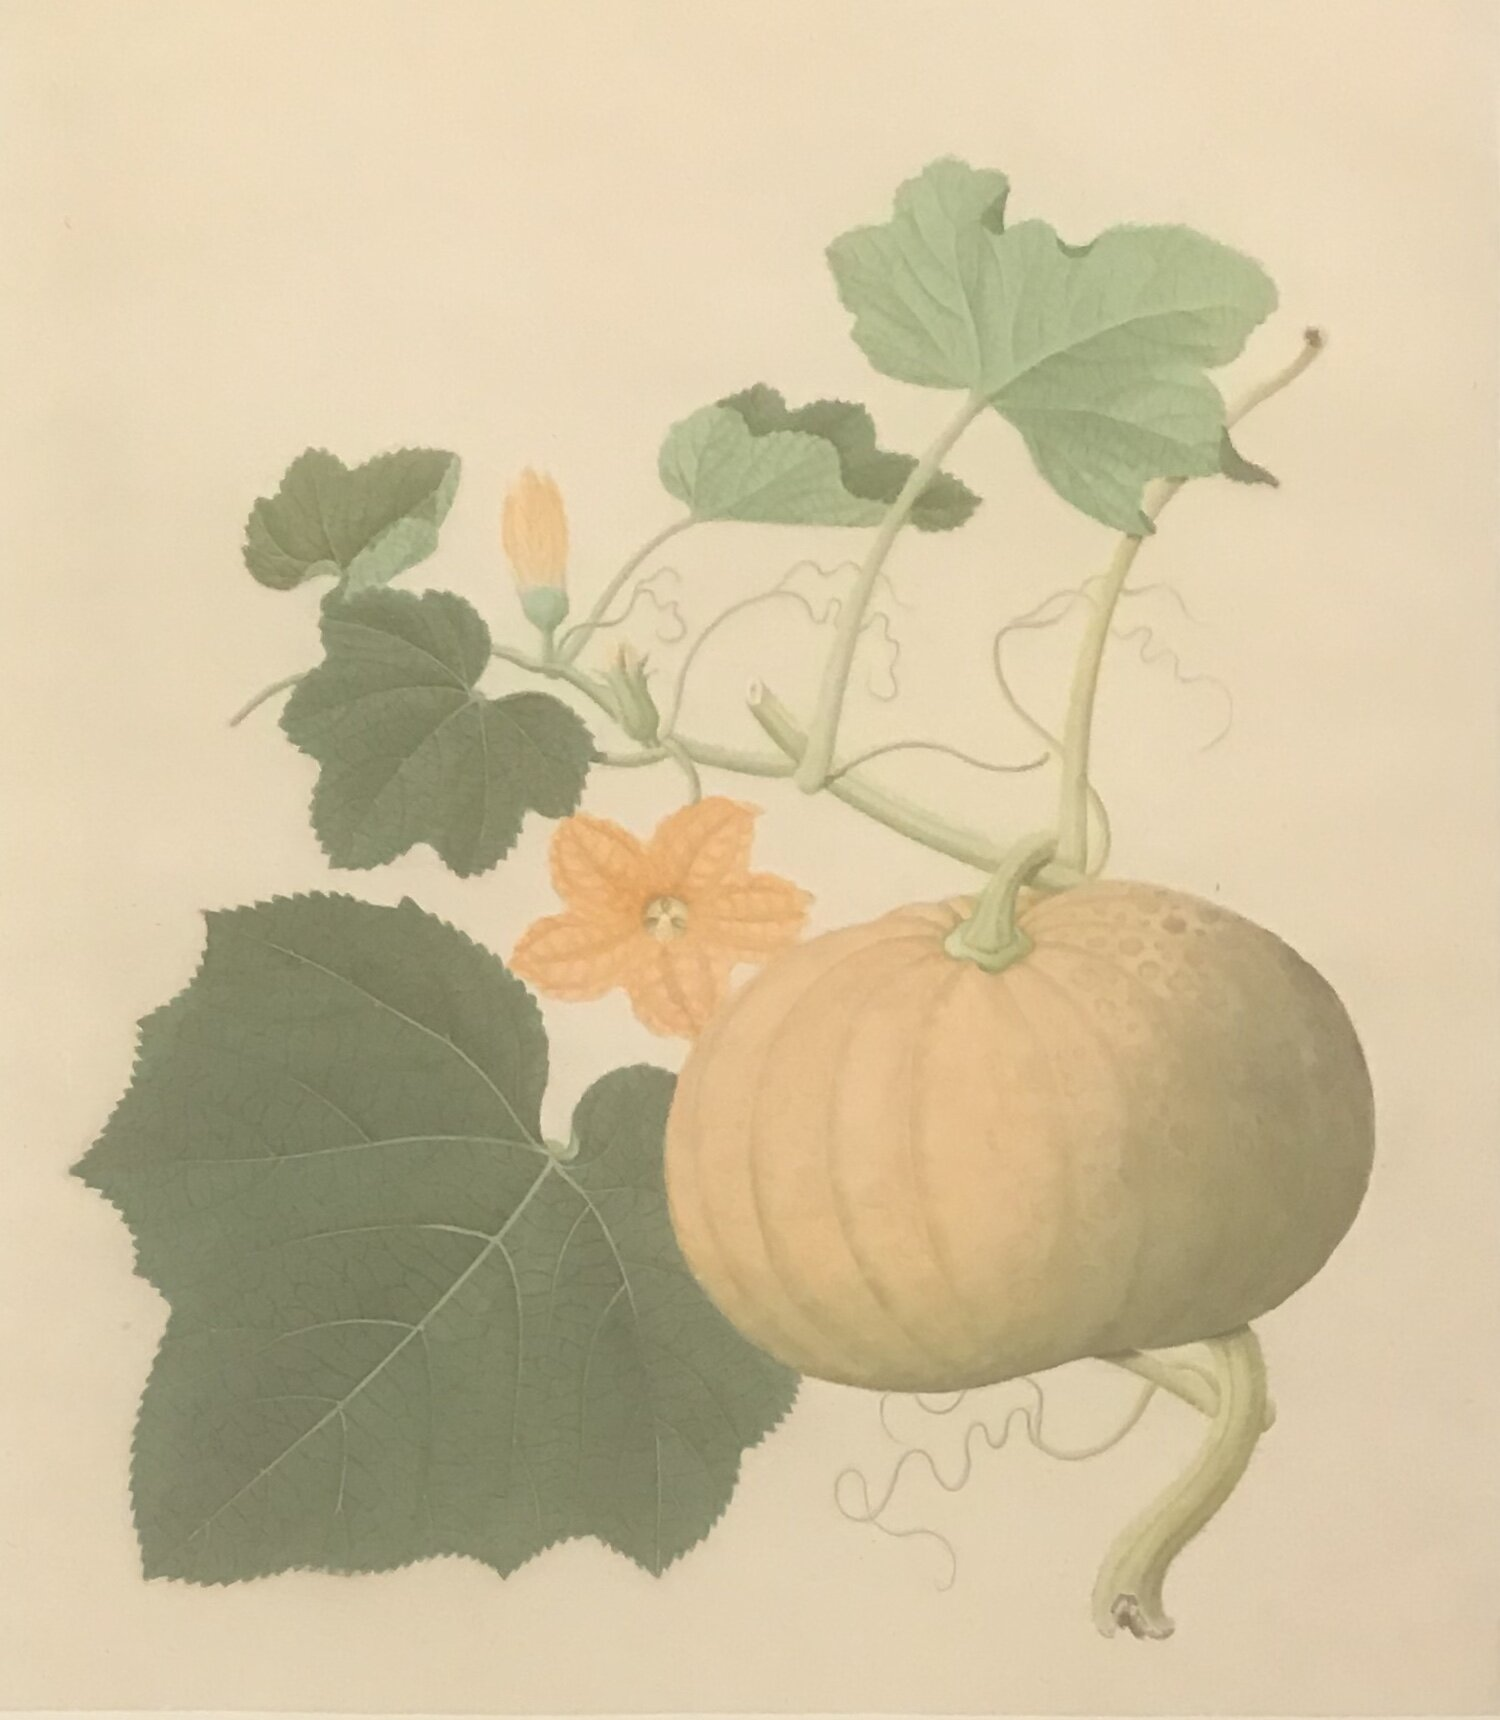 CHINESE ARTIST, WORKING IN CANTON OR MACAO  [ A squash]  Circa 1805. From the OSGF library.